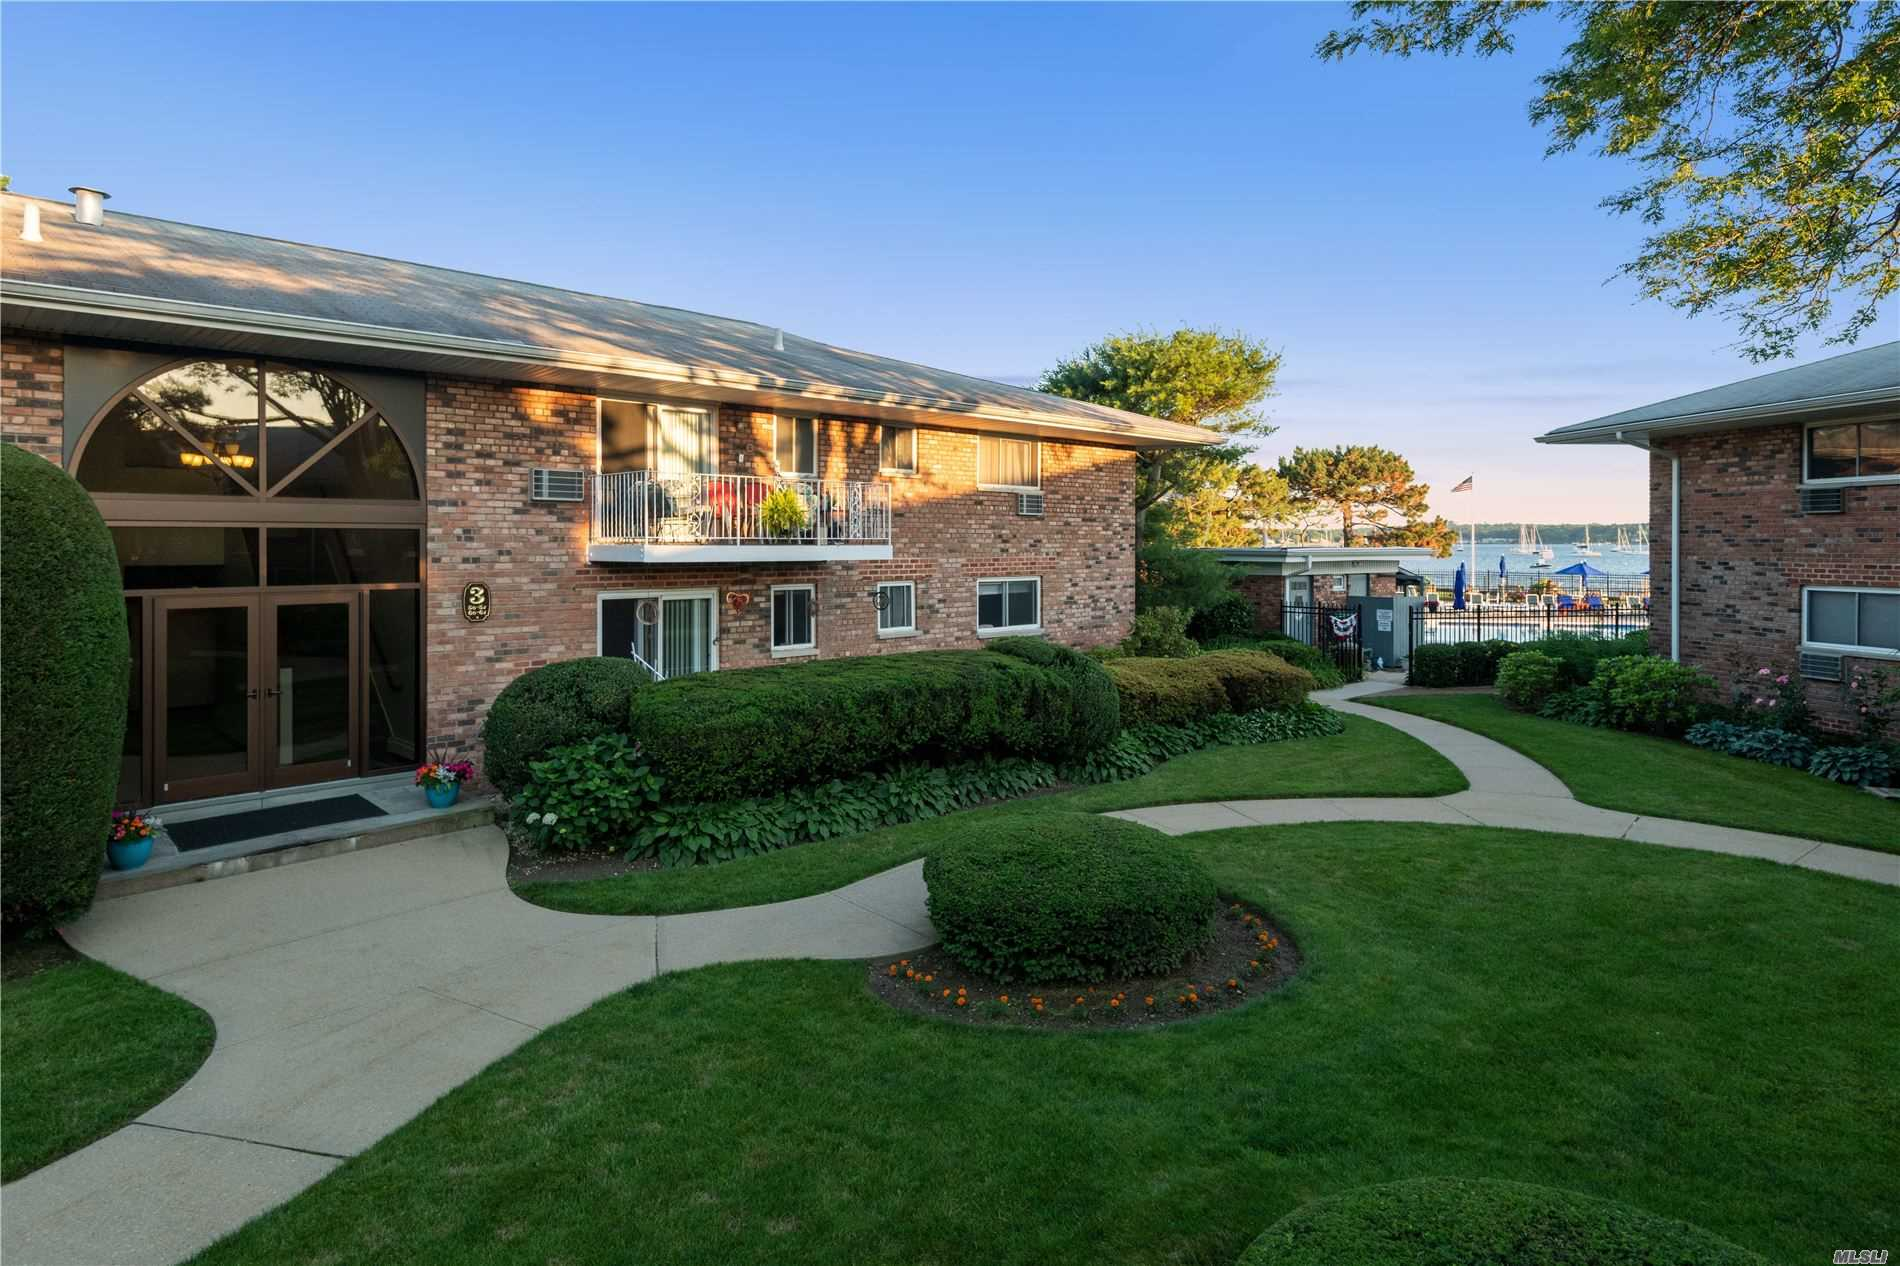 Ideal 2nd Floor Apt w/ 2 Bdrm, 2 Bath and Views of Pool and Manhasset Bay from Bedroom and Balcony, Updated kitchen and baths, Closets Galore, Hardwood Floors, Laundry, Storage, Outdoor Pool, Manicured Grounds, F/T Super on Premises